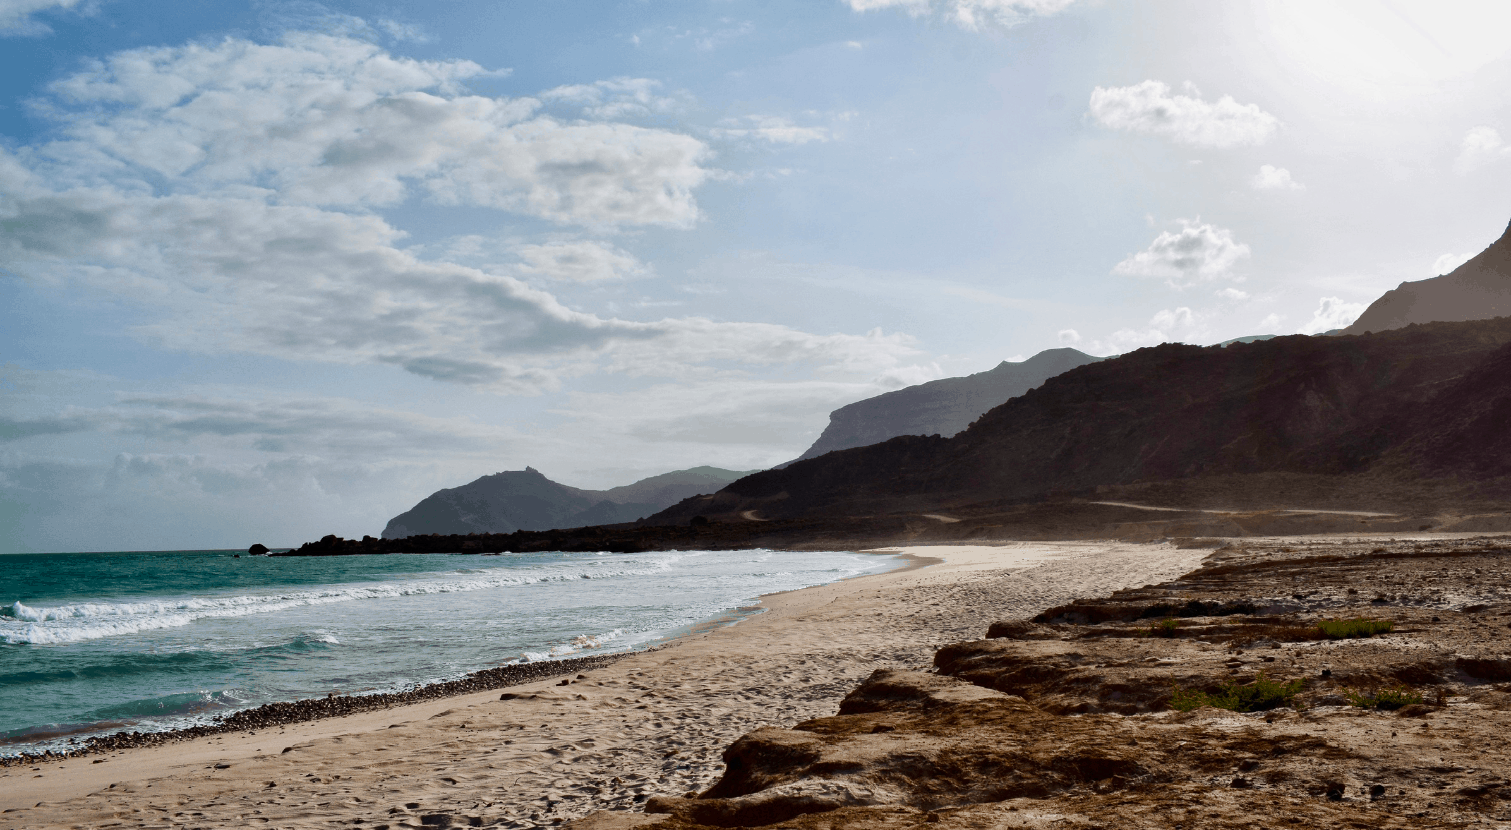 Beautiful beach in Oman with ocean and waves and mountains in the background